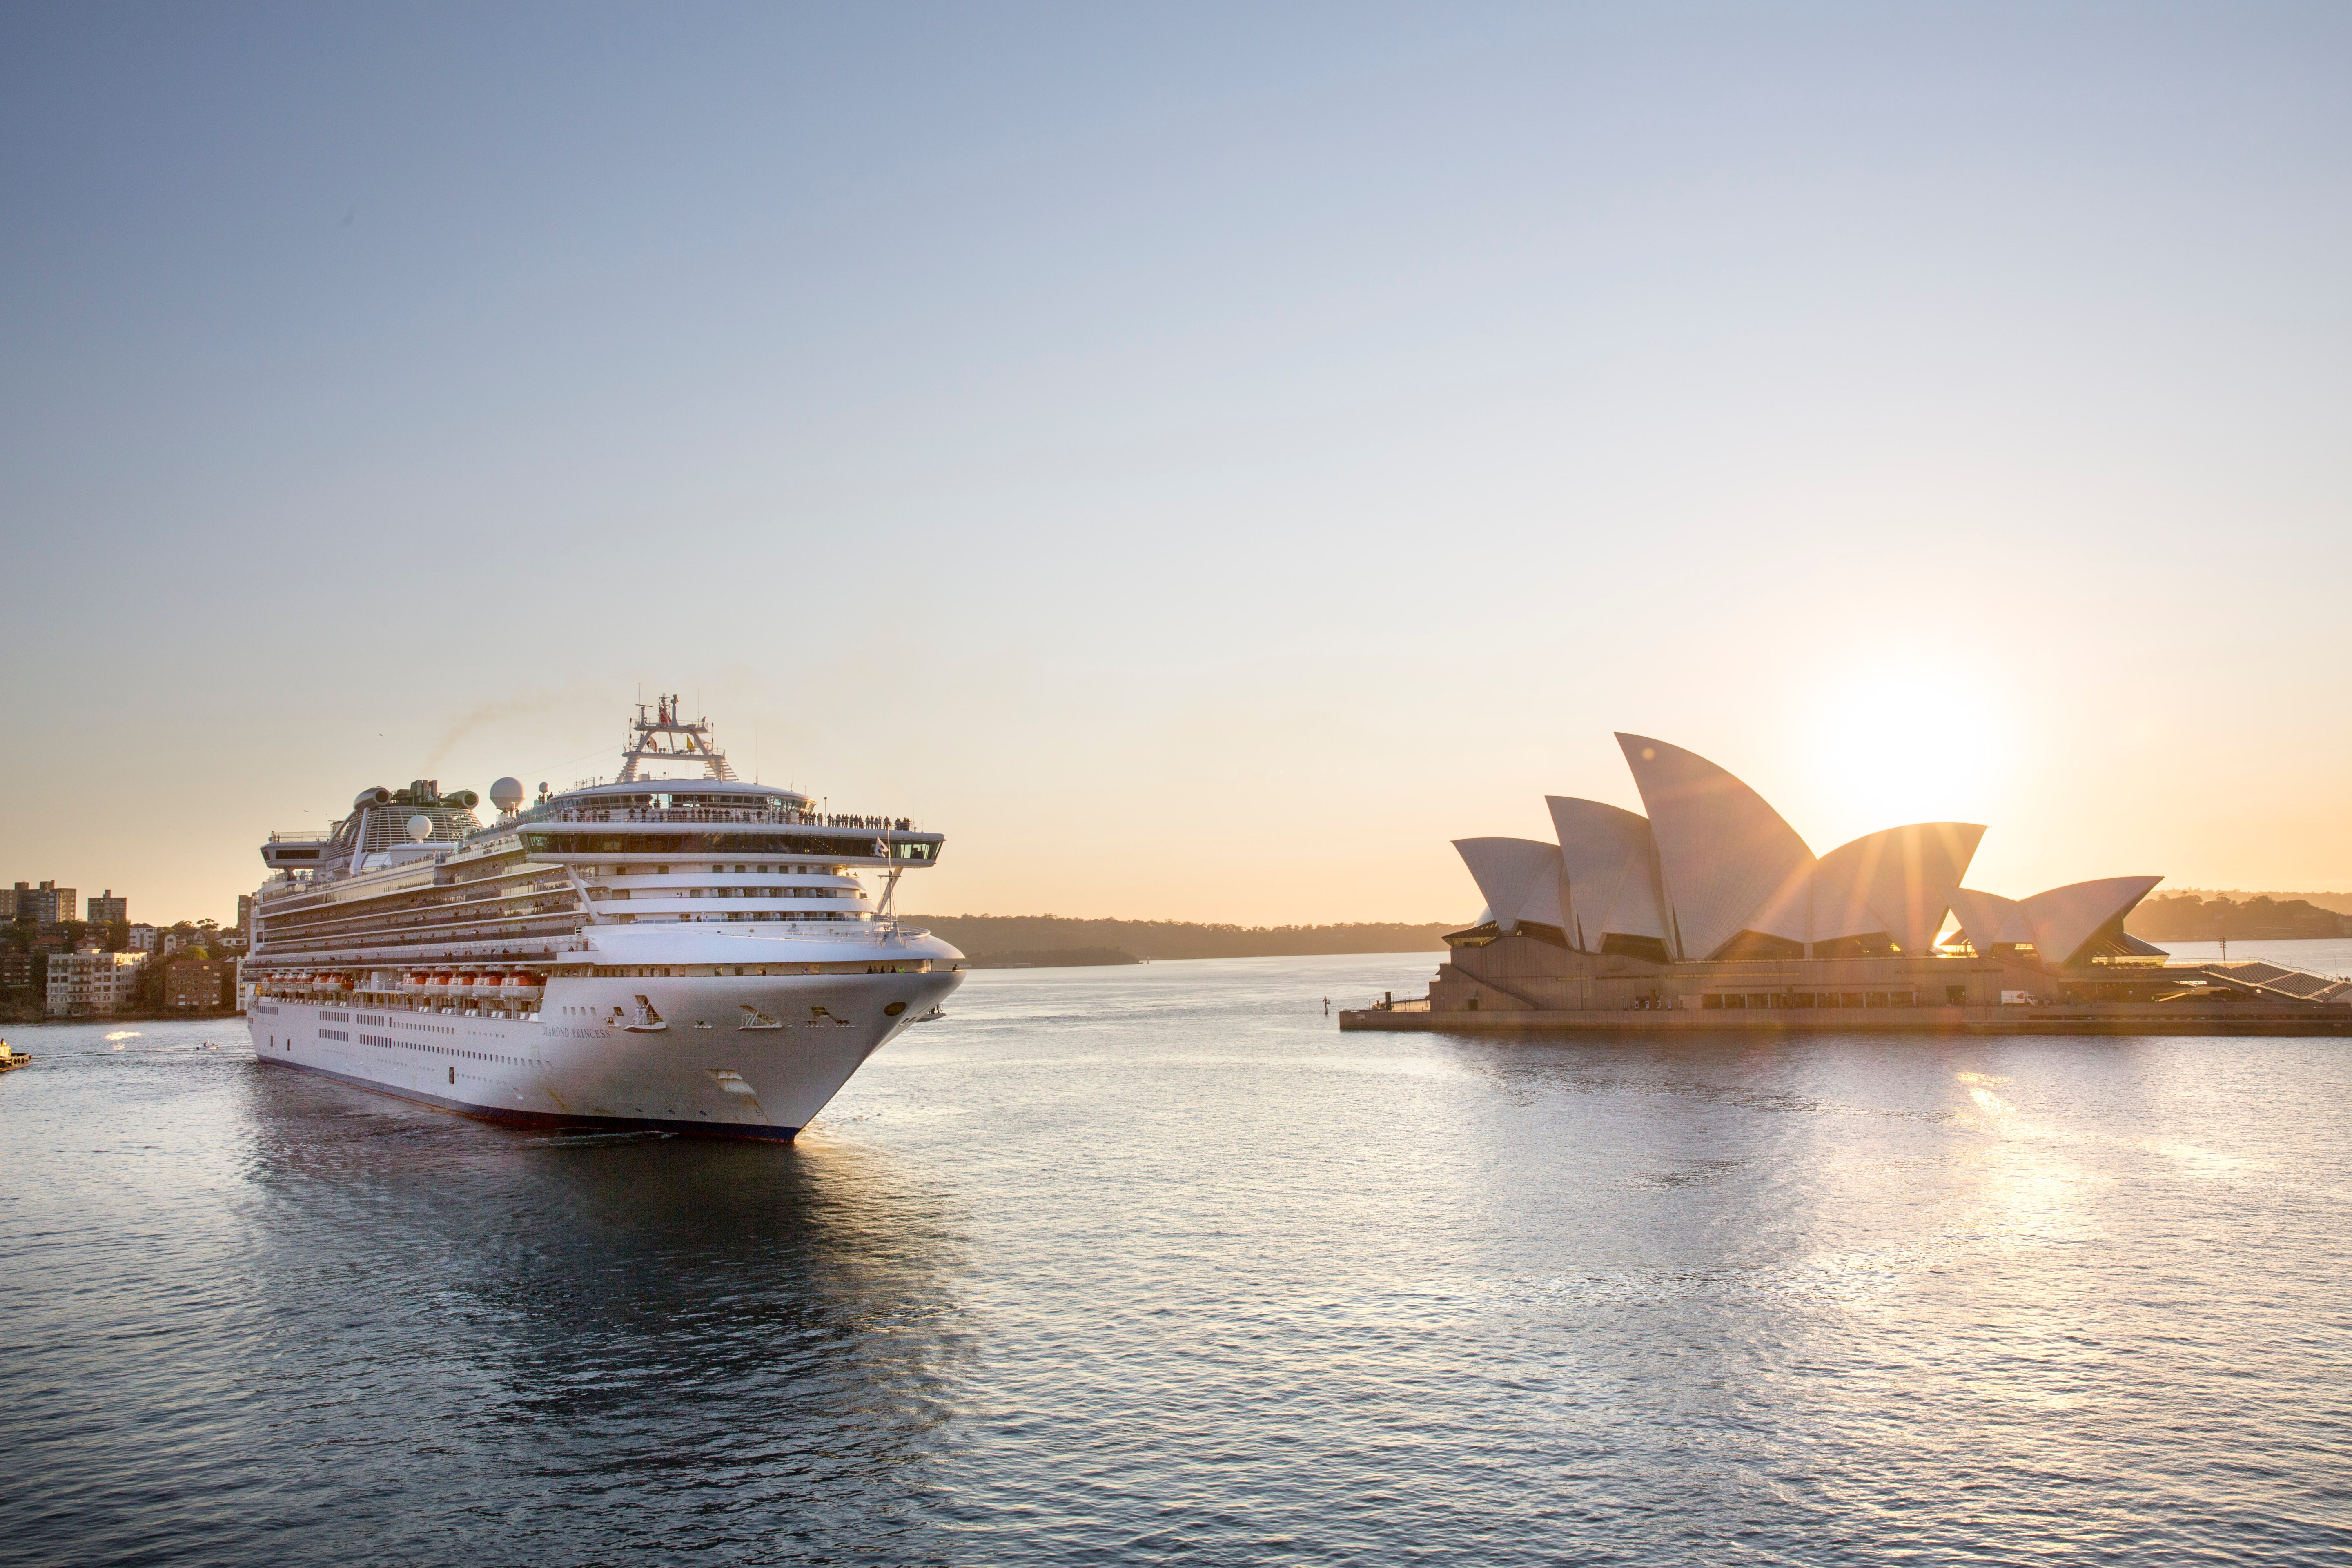 Princess Cruises' Diamond Princess as it arrives in Sydney Harbour, Australia